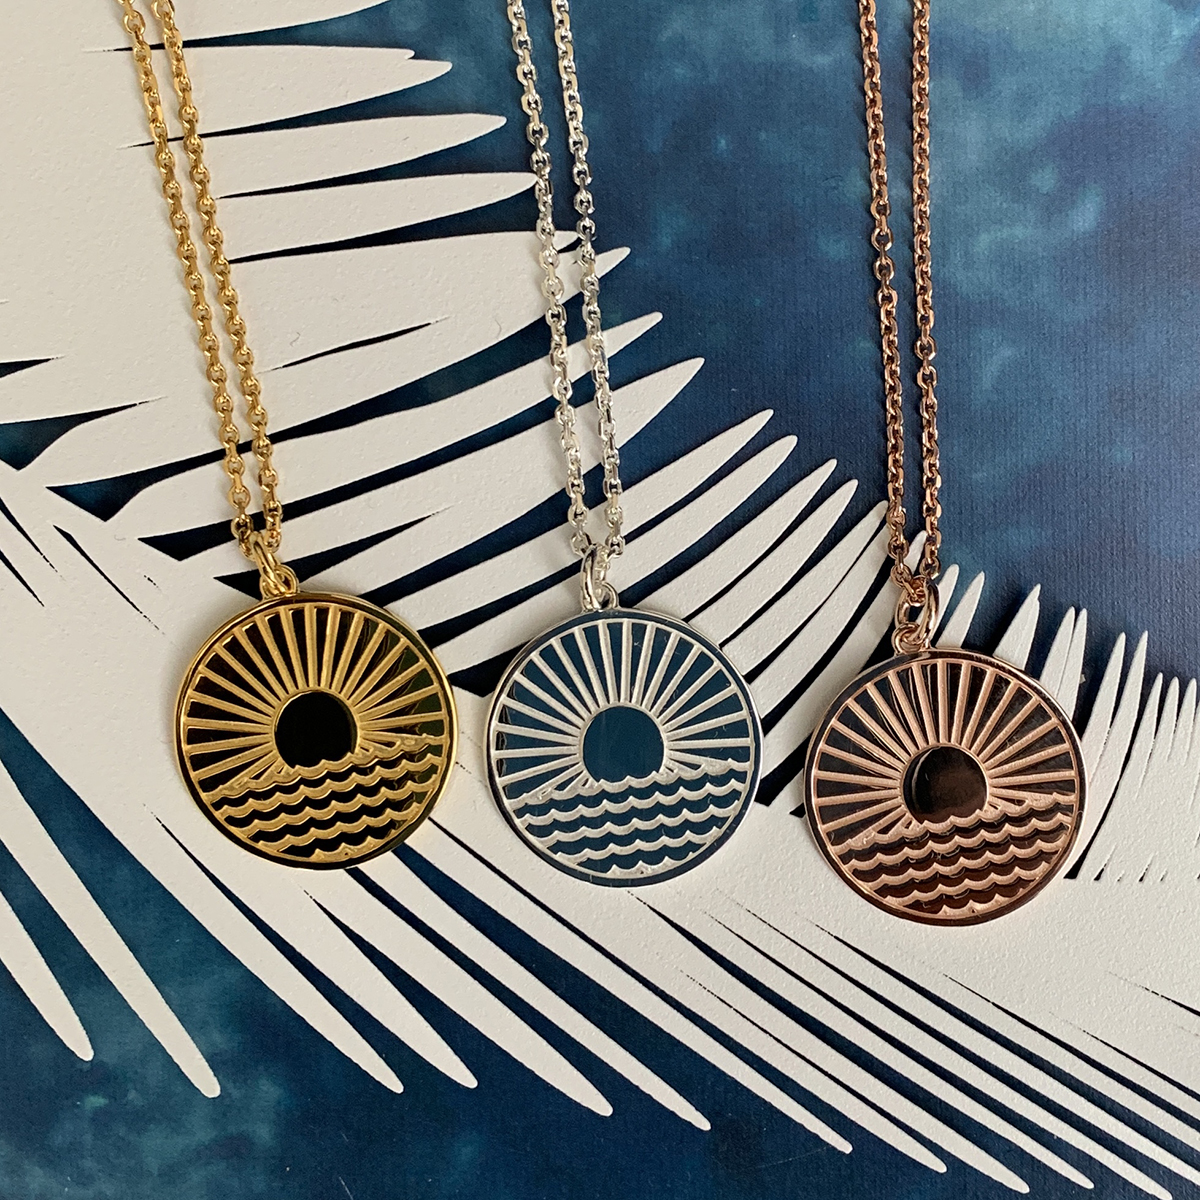 sun rising over the sea Necklace Photoshoot